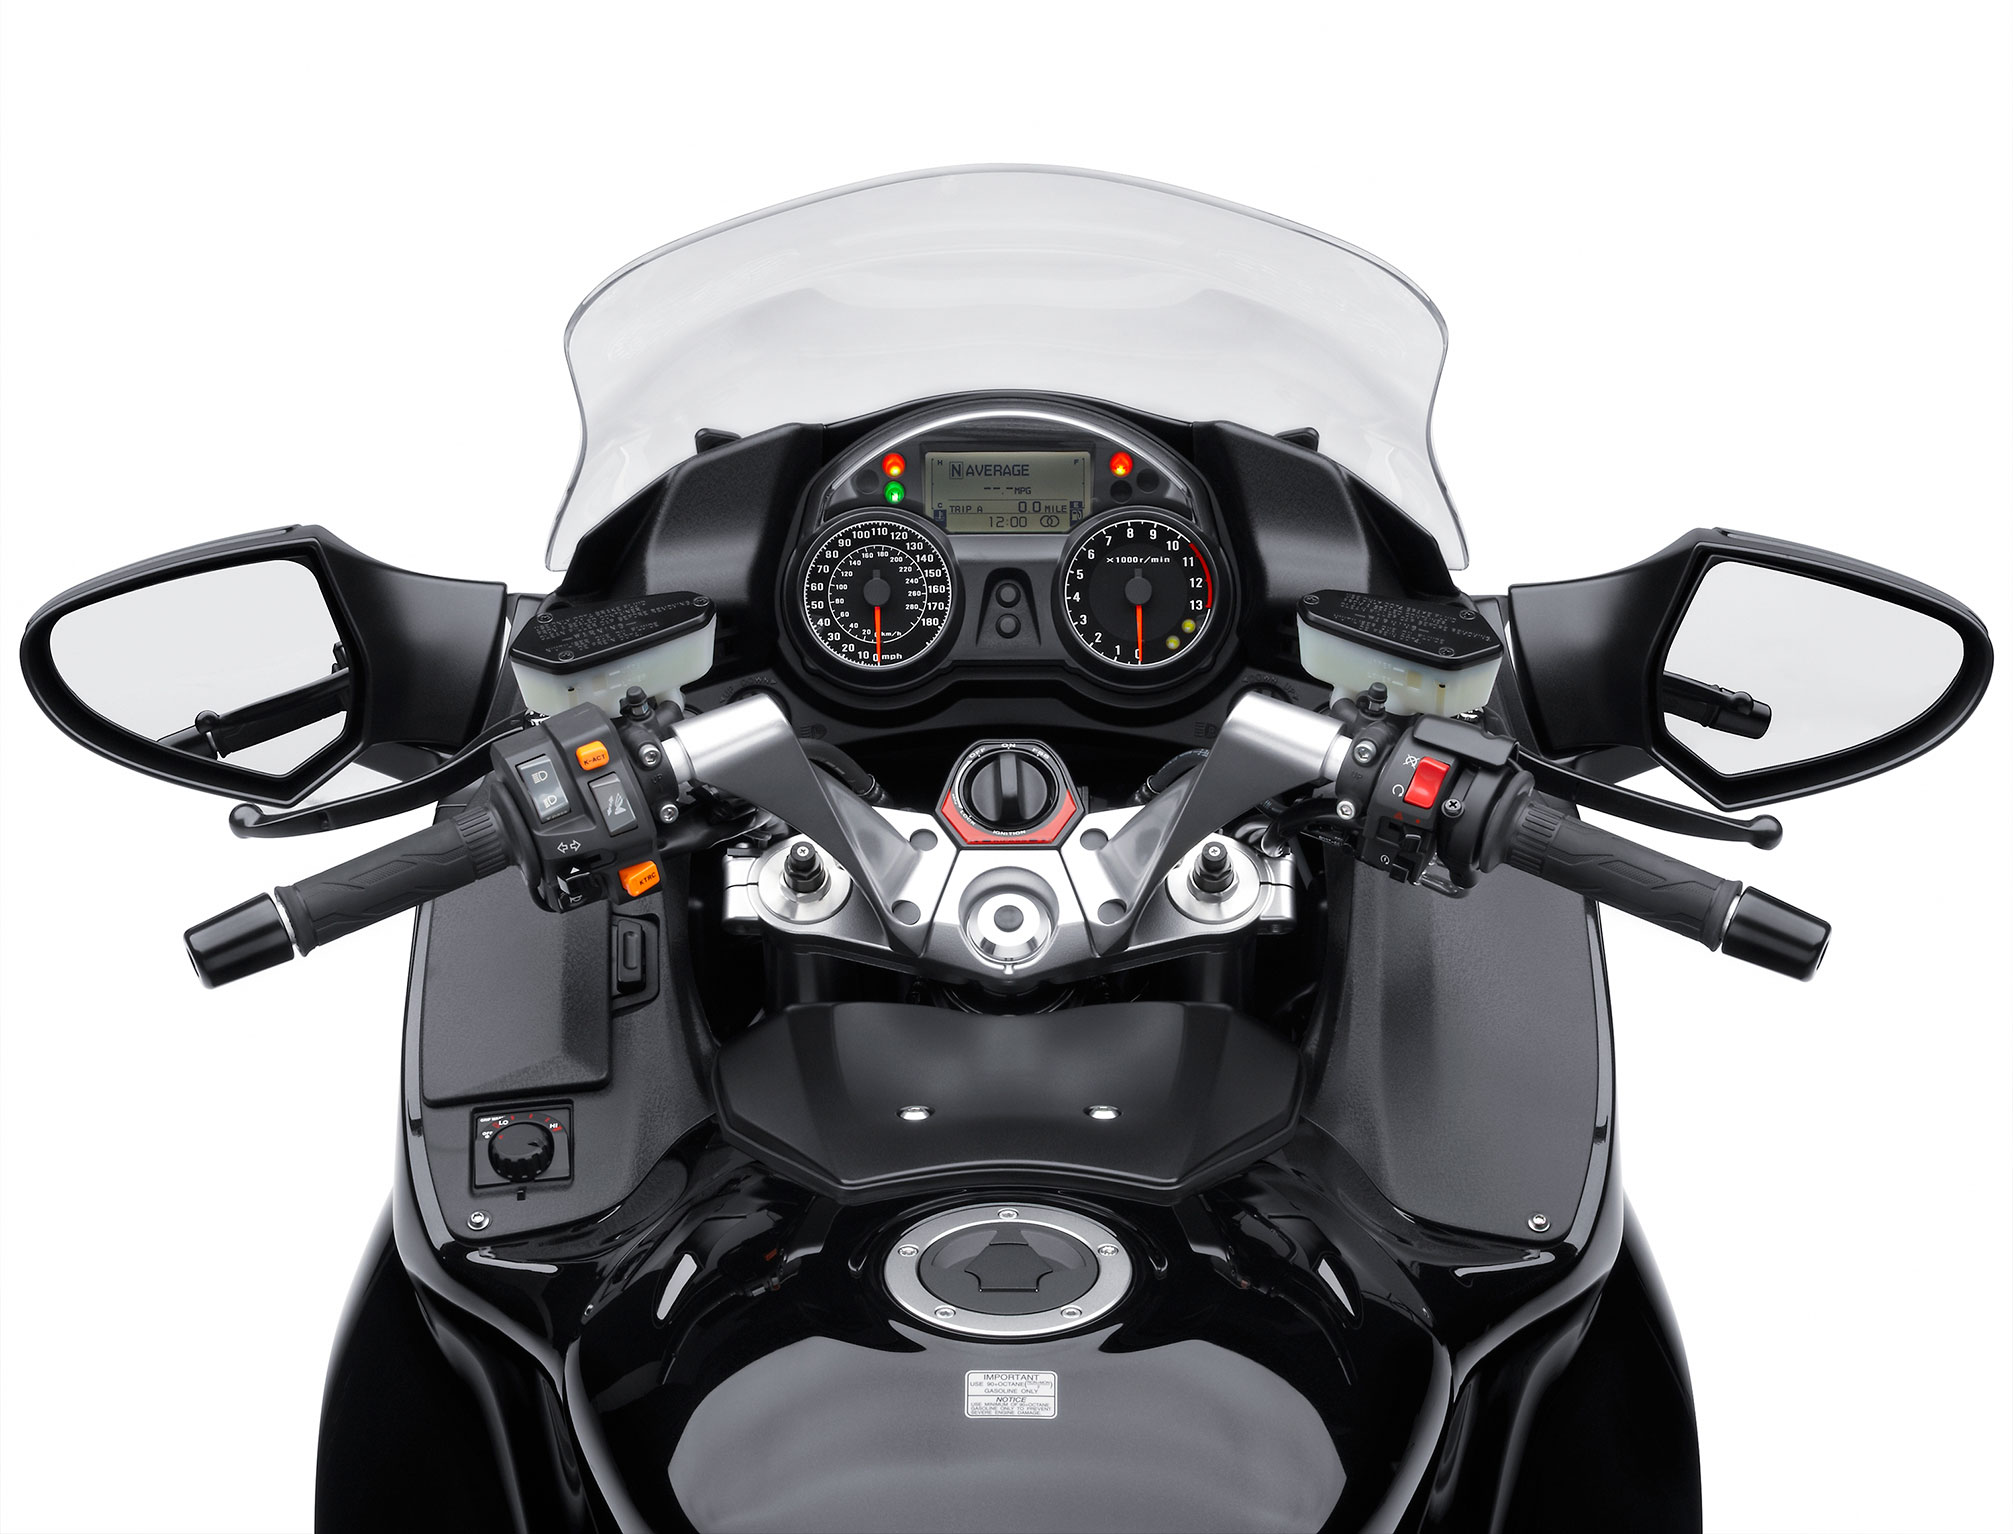 2013 kawasaki concours 14 abs review